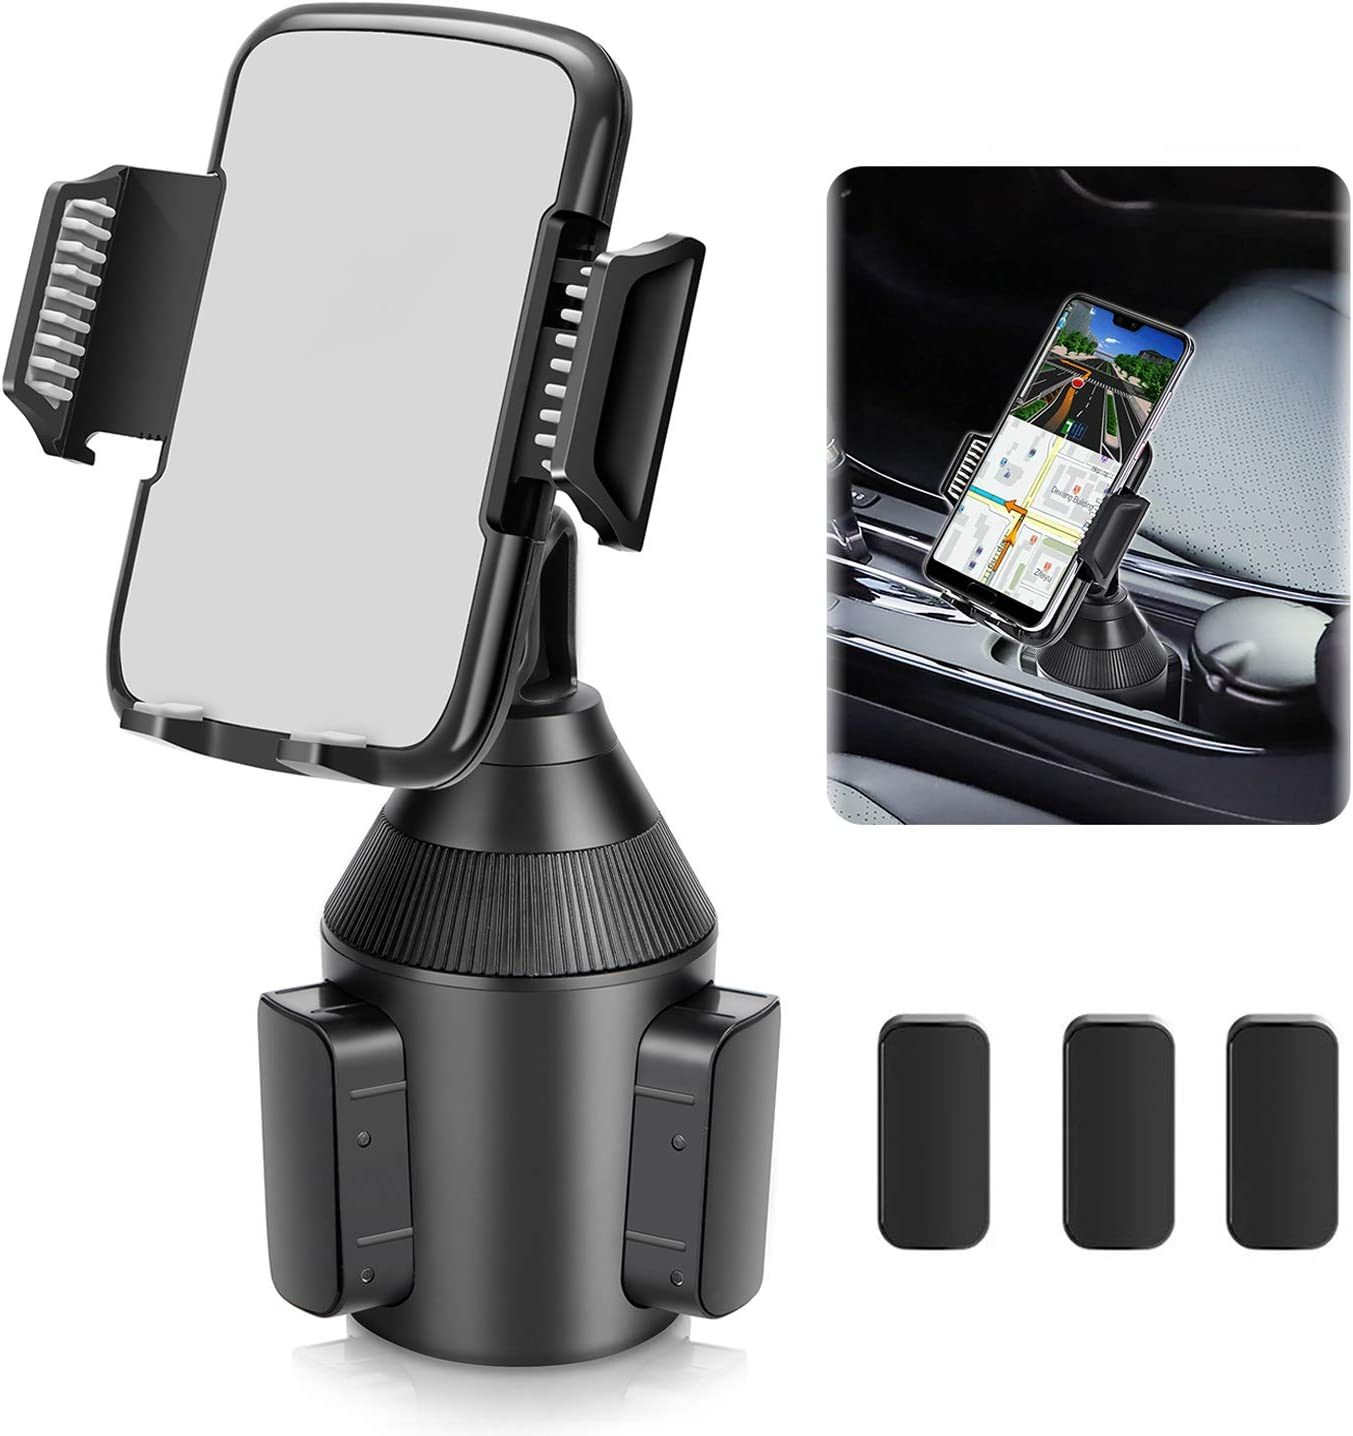 Car Cup Holder Phone Mount,Universal Smart Adjustable Automobile Cell Phone Mount for iPhone 11 pro//Xs//Max//X//XR//8//7//6 Plus Samsung Galaxy S10//S9//S8 Note 9 Nexus Sony//HTC//Huawei//LG//Smartphones